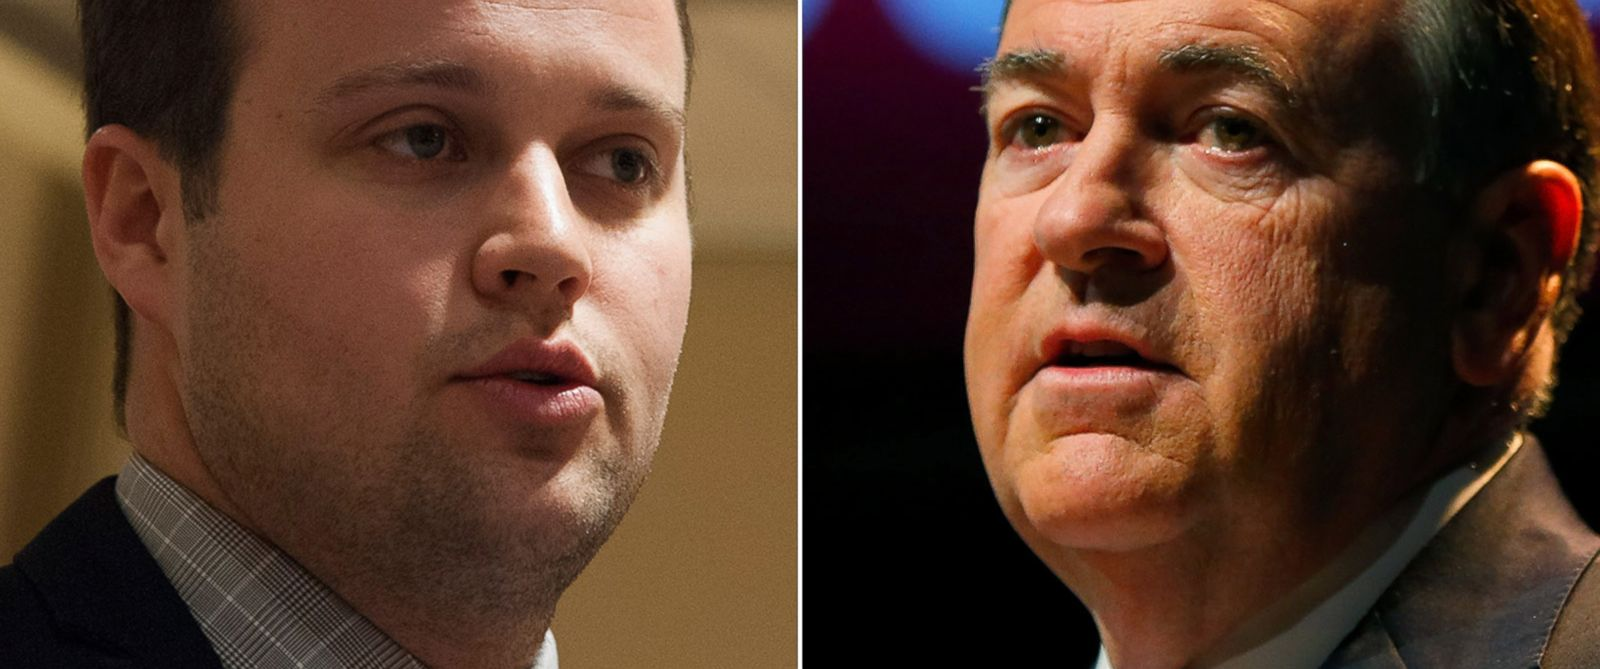 PHOTO: Josh Duggar, seen left in this Feb. 28, 2015 file photo, and Republican presidential hopeful Mike Huckabee, seen right in this May 5, 2015 file photo.